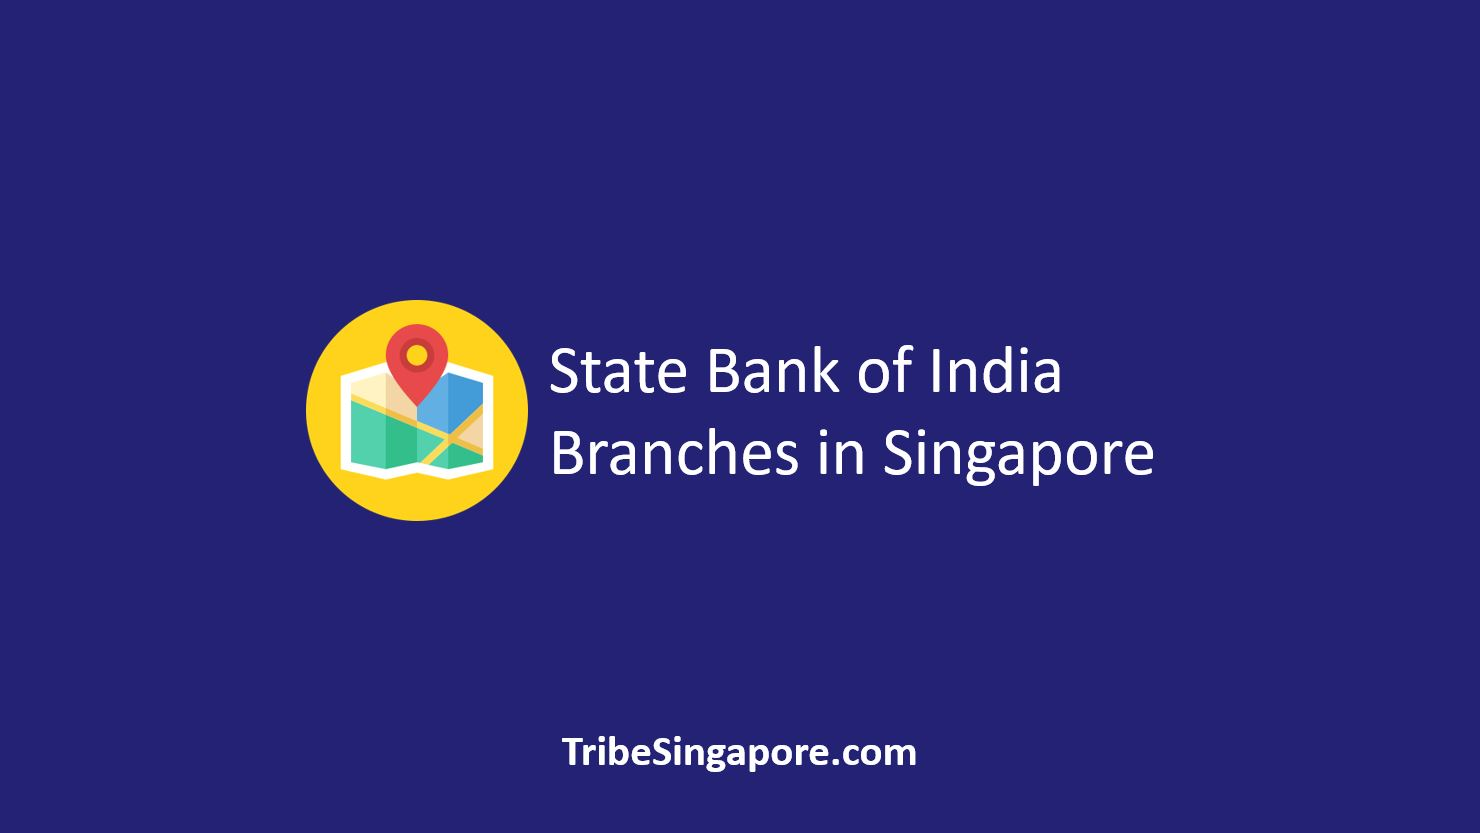 State Bank of India Branches in Singapore